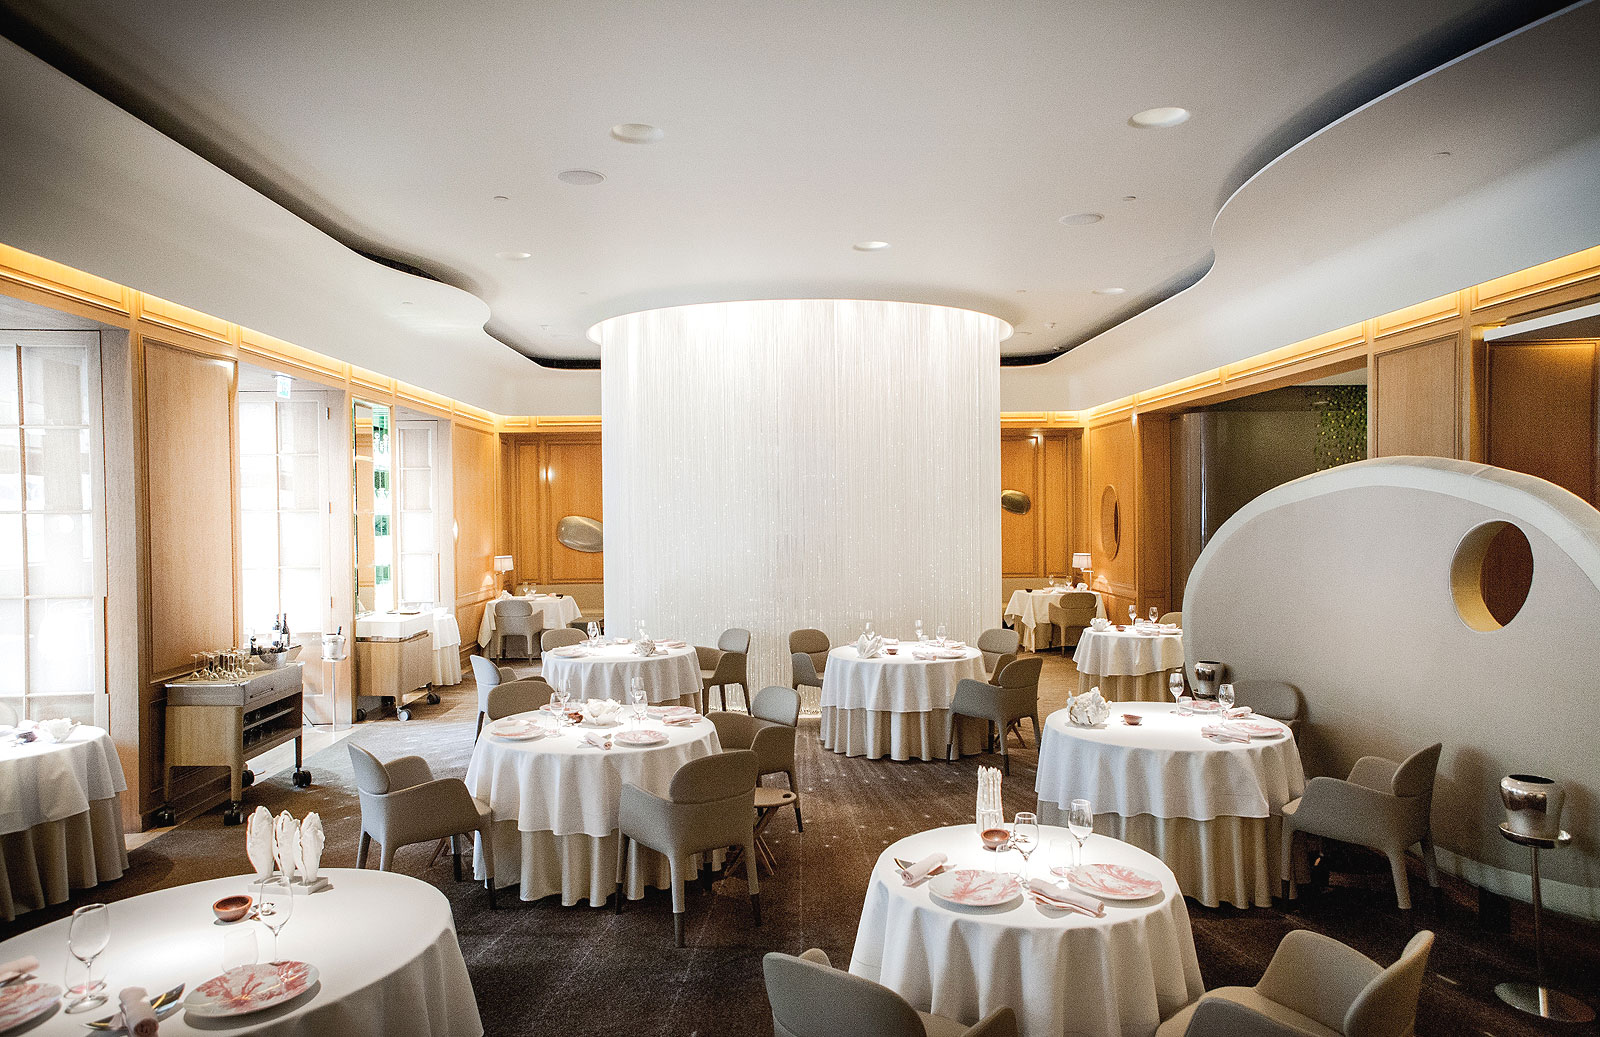 Reserve a table at Alain Ducasse at The Dorchester